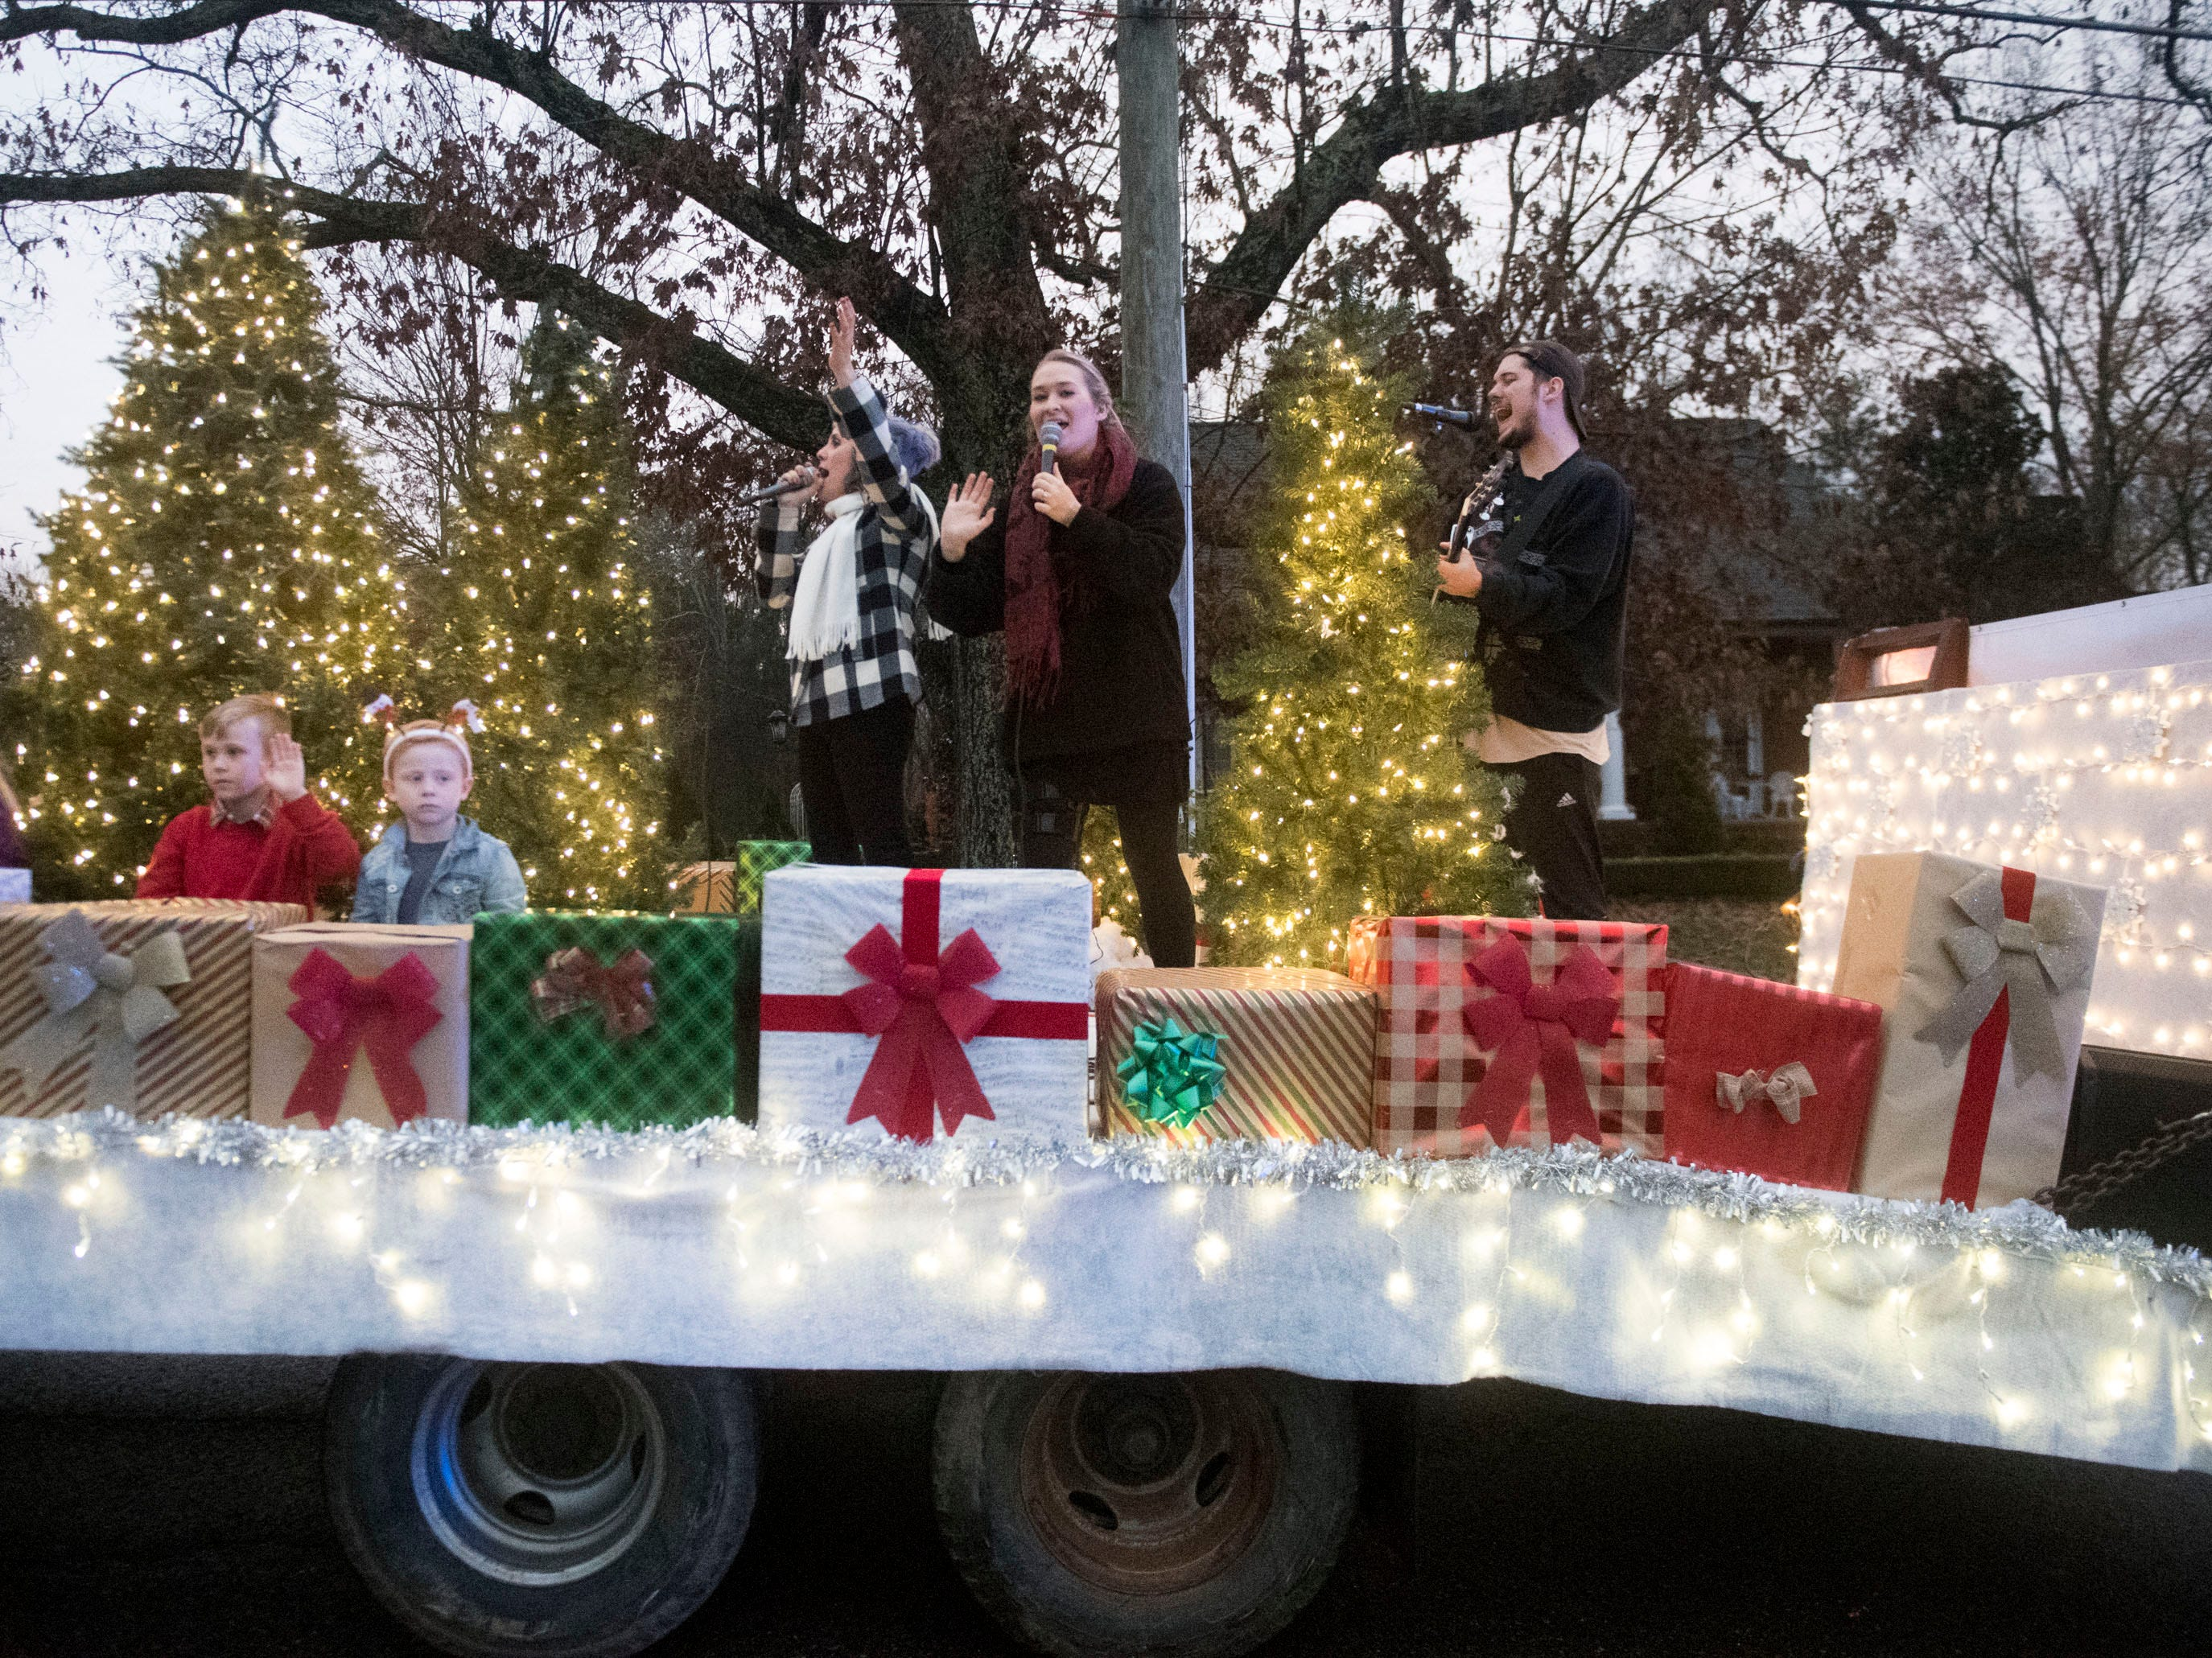 Redemption Life Church in the Powell Lions Club Christmas Parade on Saturday, December 1, 2018.